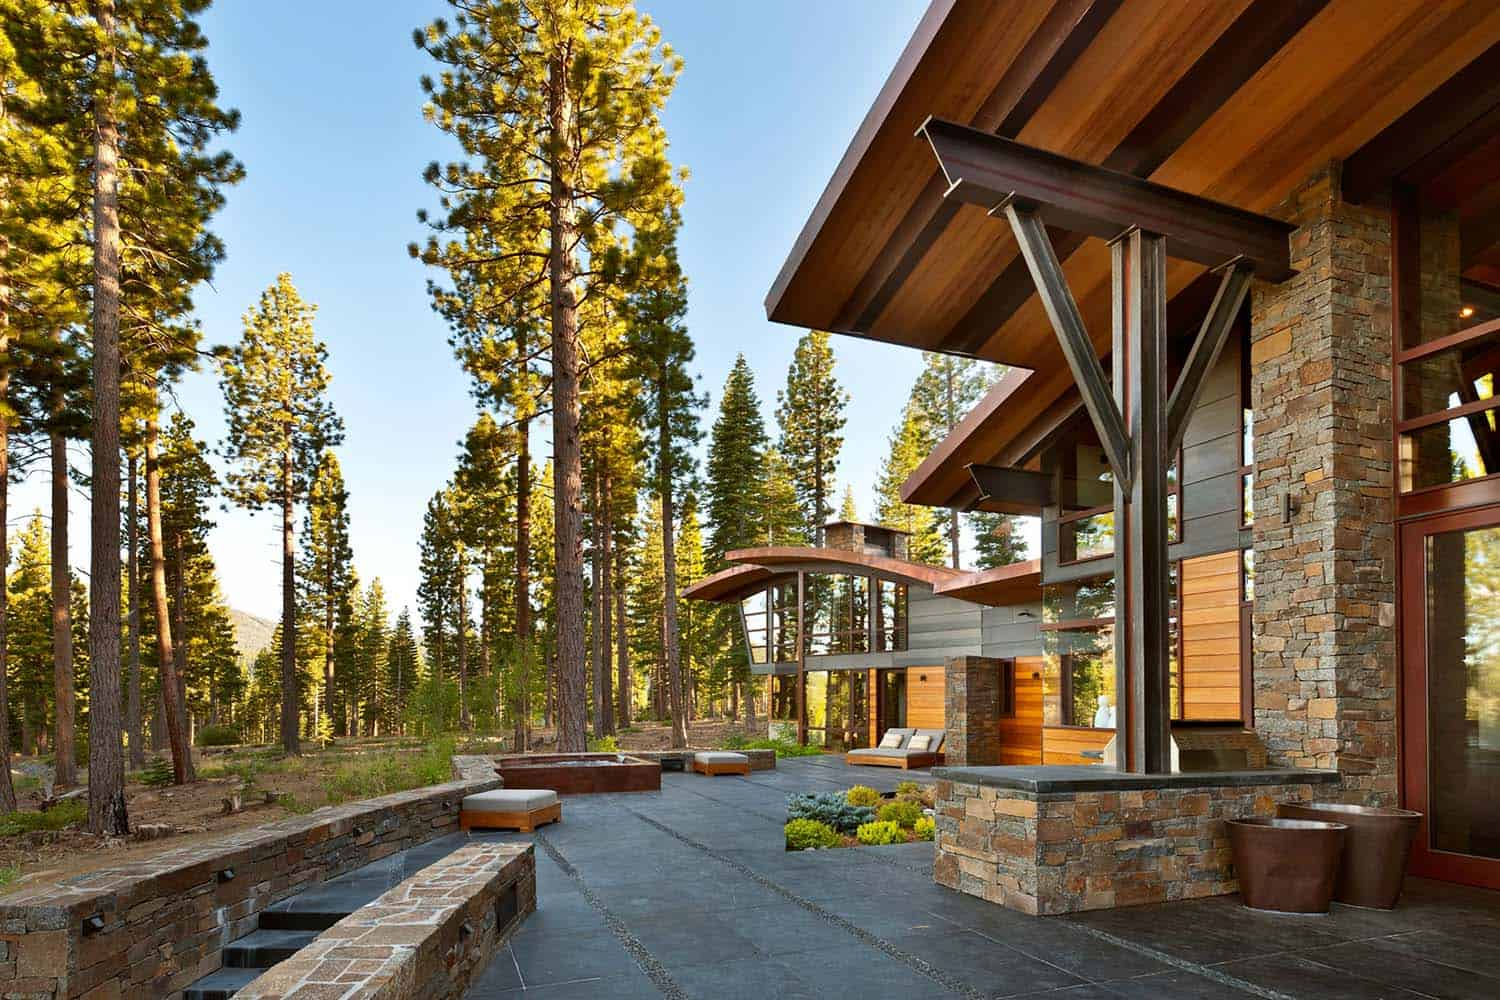 Contemporary Mountain Home-Ward Young Architecture-19-1 Kindesign